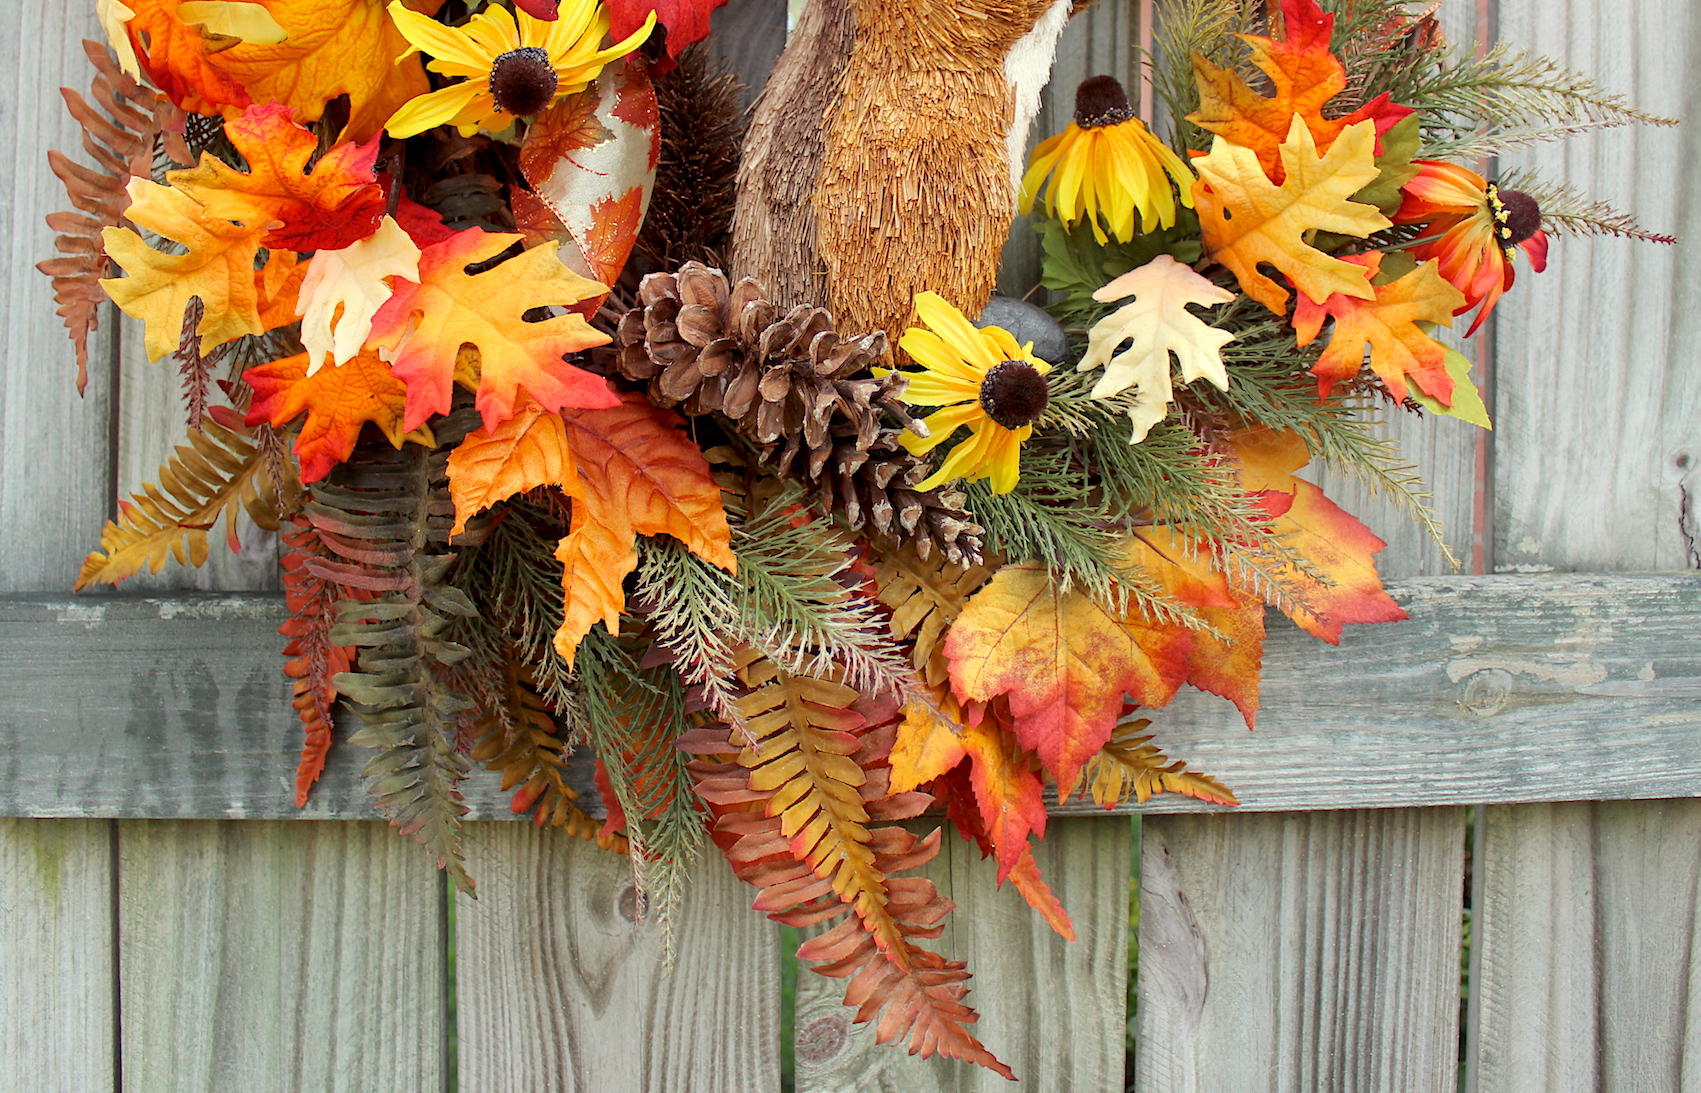 Rustic Fall Floral Chipmunk Wreath